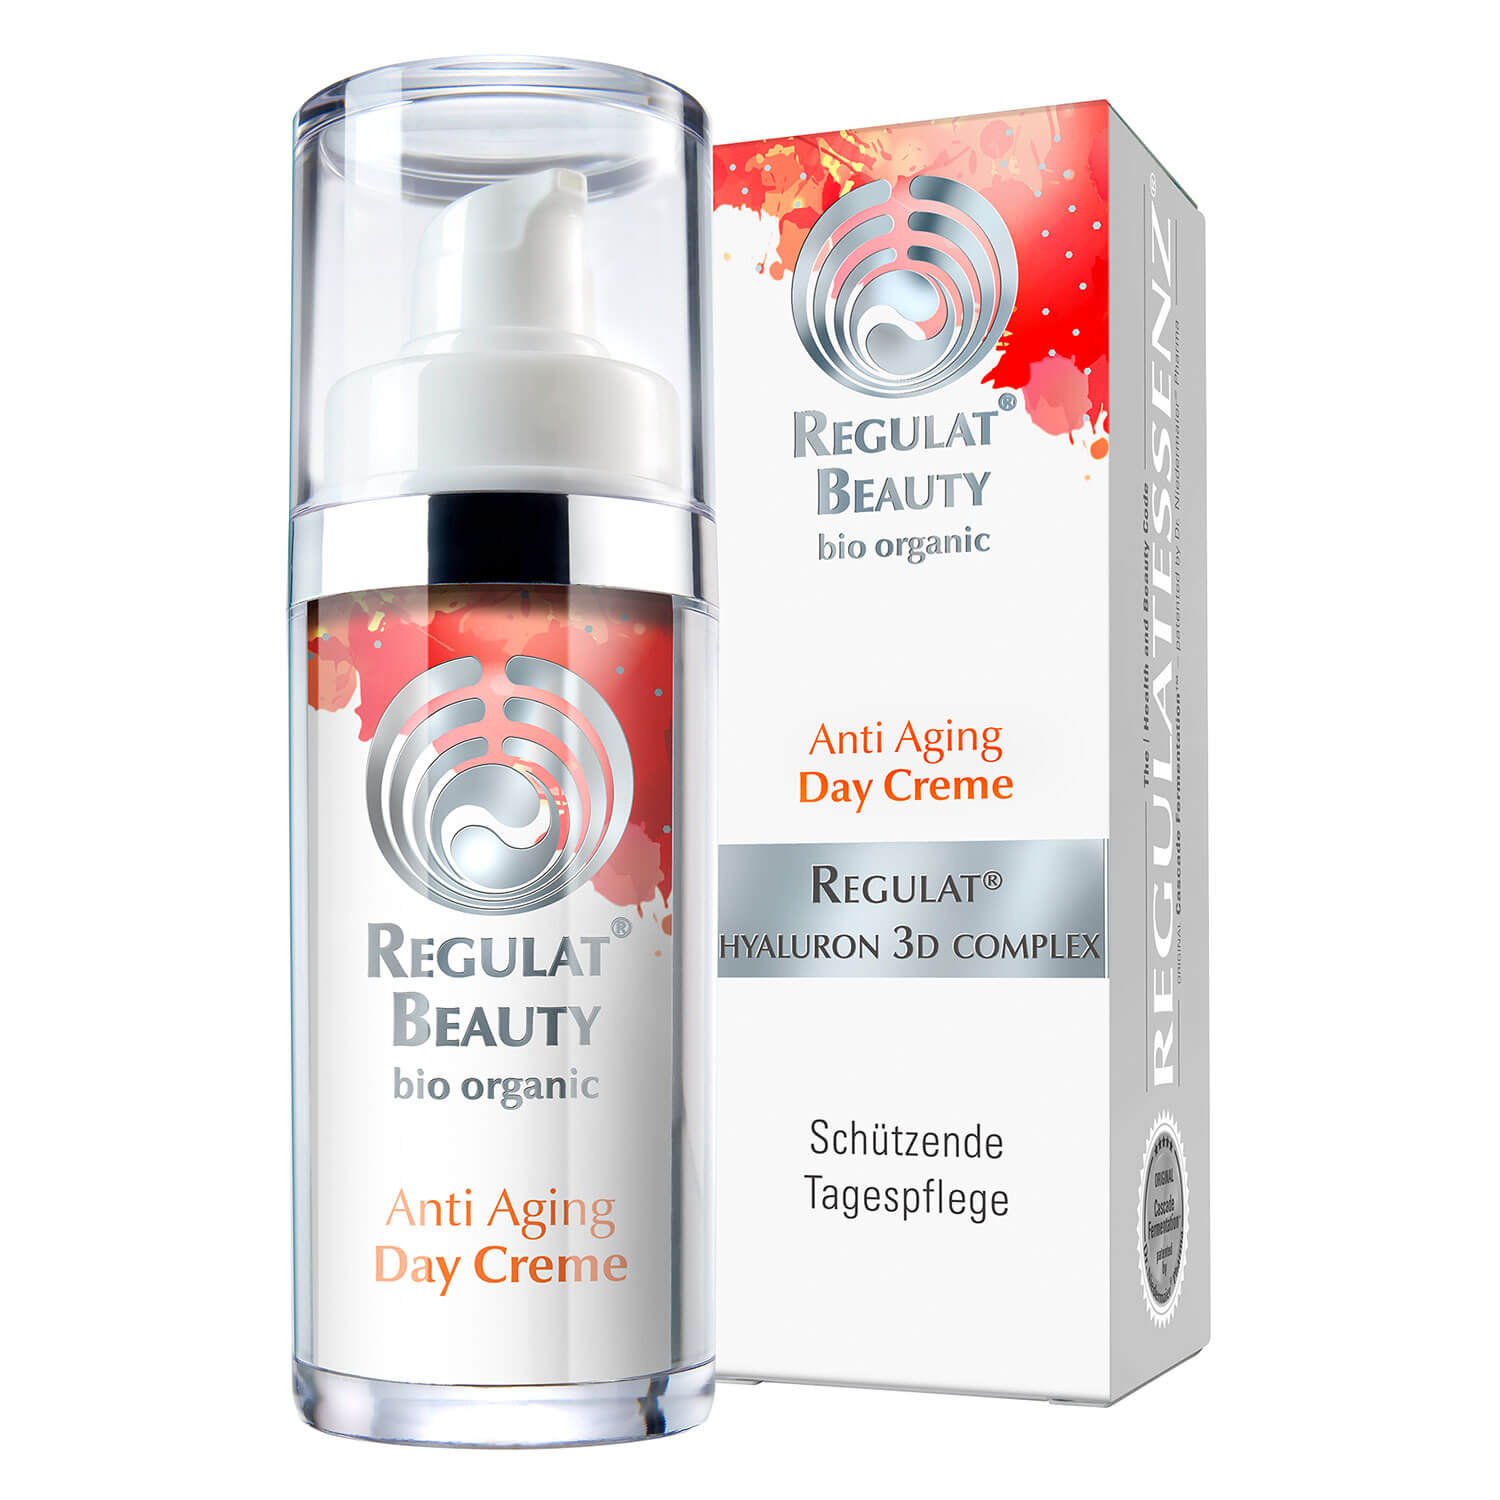 Regulat® Beauty - Anti Aging Day Creme